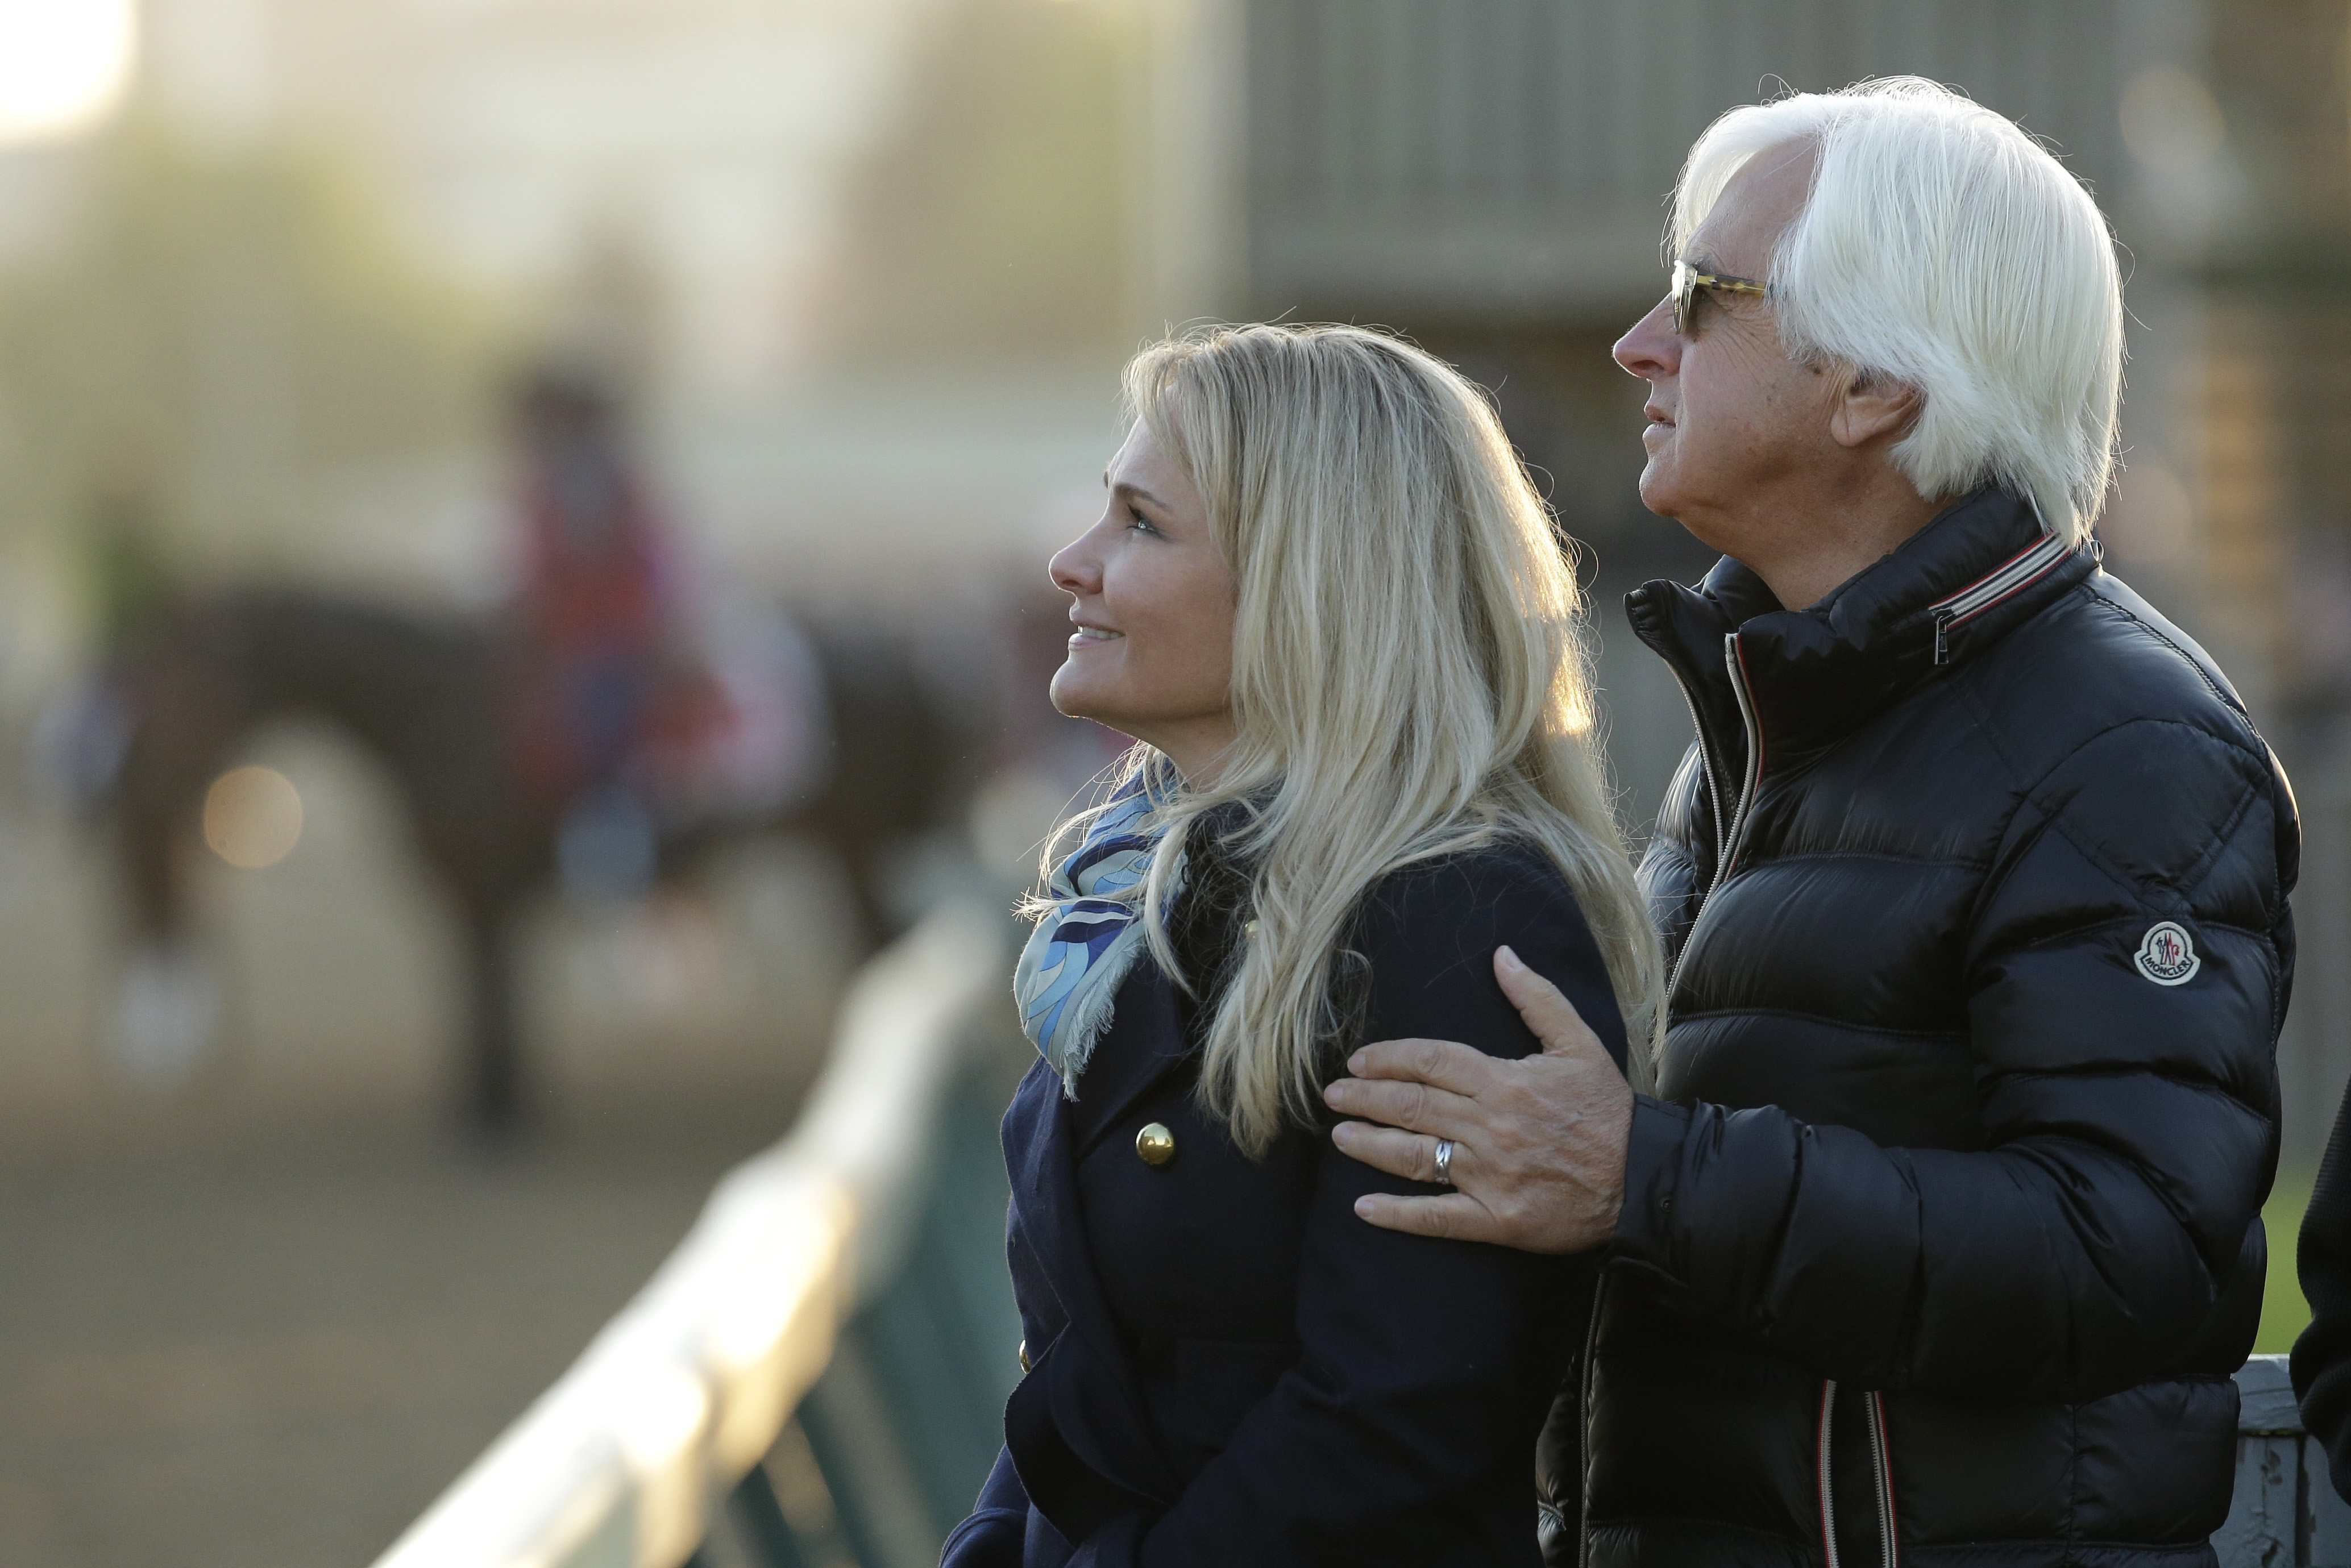 Trainer Bob Baffert and his wife Jill watch horses train on the track at Churchill Downs Wednesday, April 29, 2015, in Louisville, Ky. (AP Photo/Charlie Riedel)